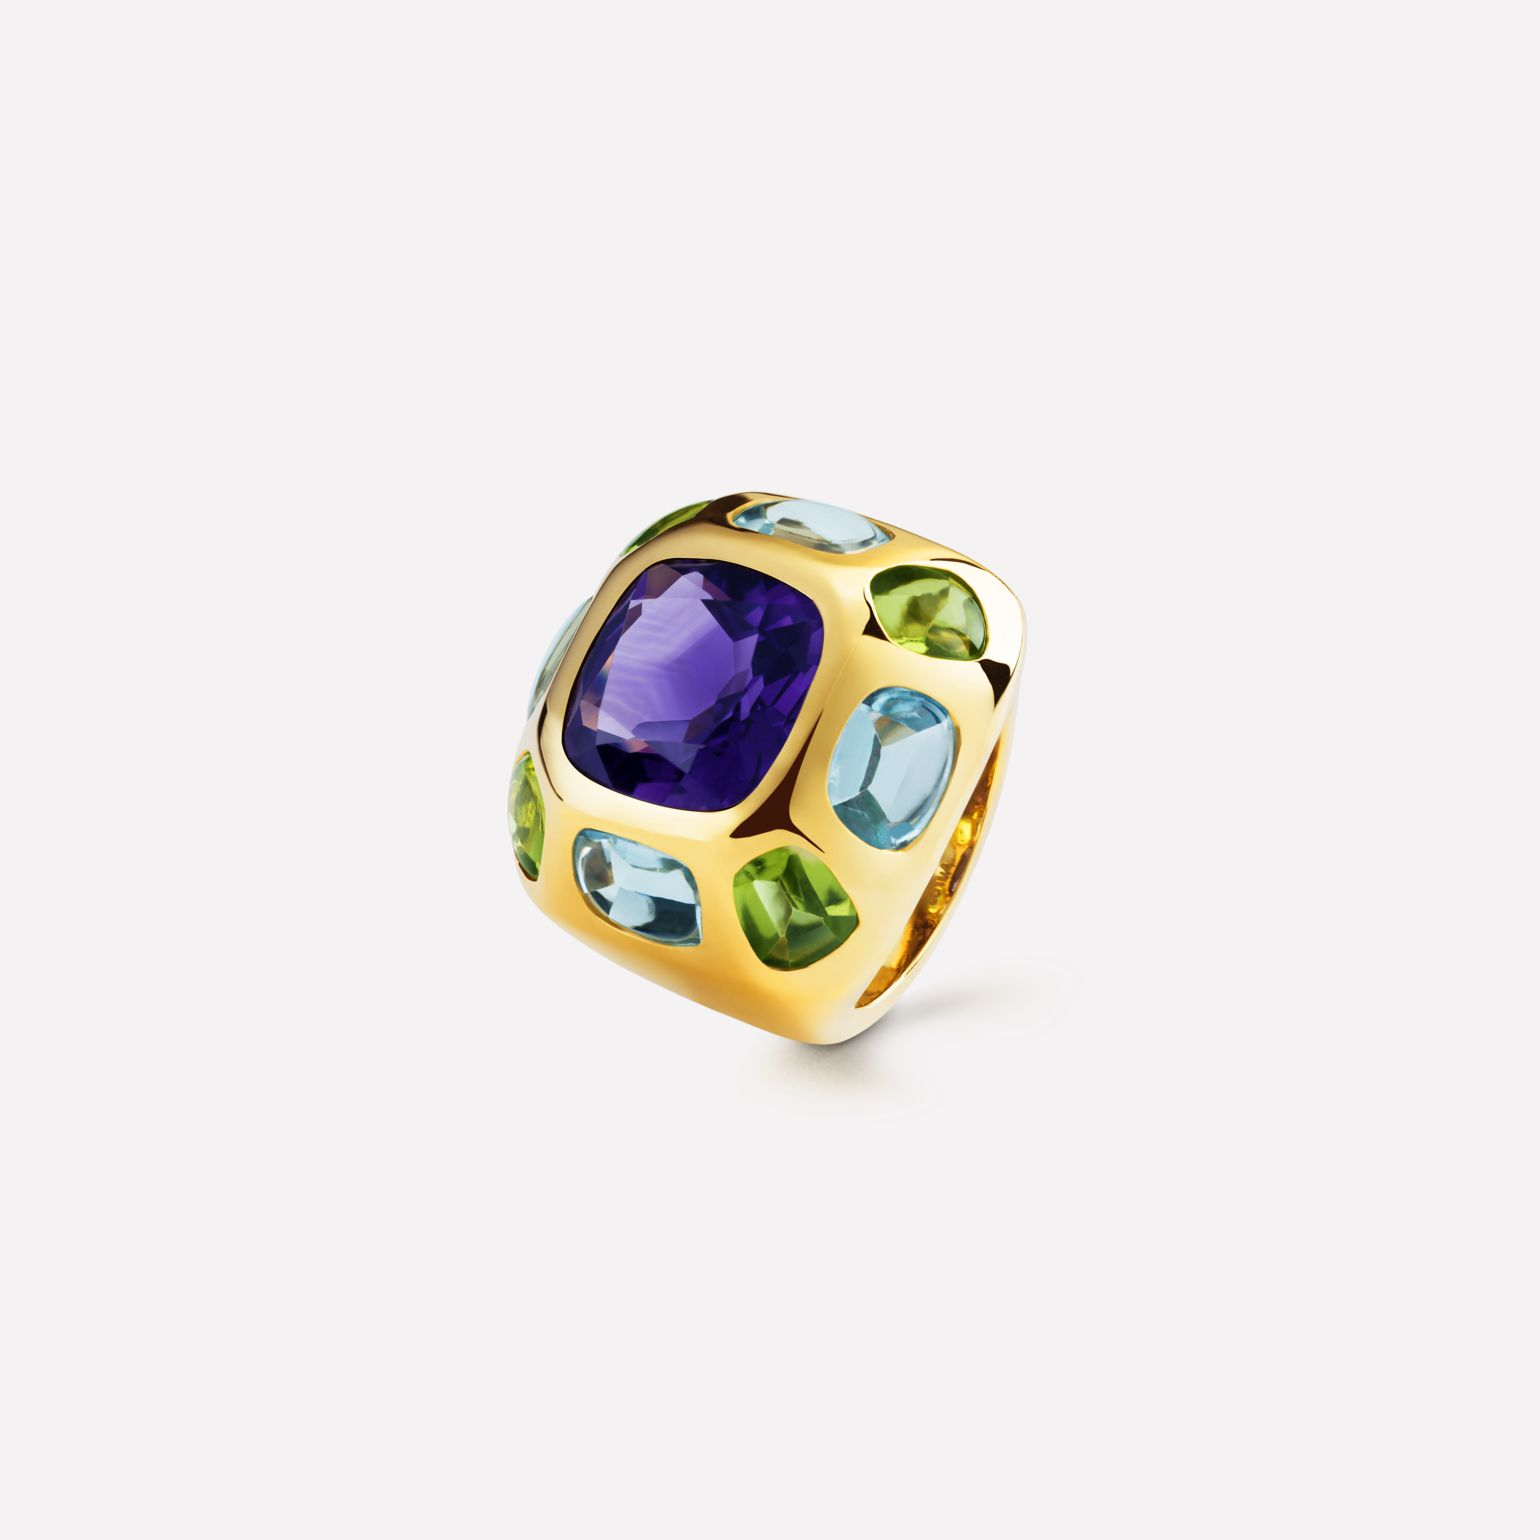 Baroque ring 18K yellow gold with gemstones and one center gemstone